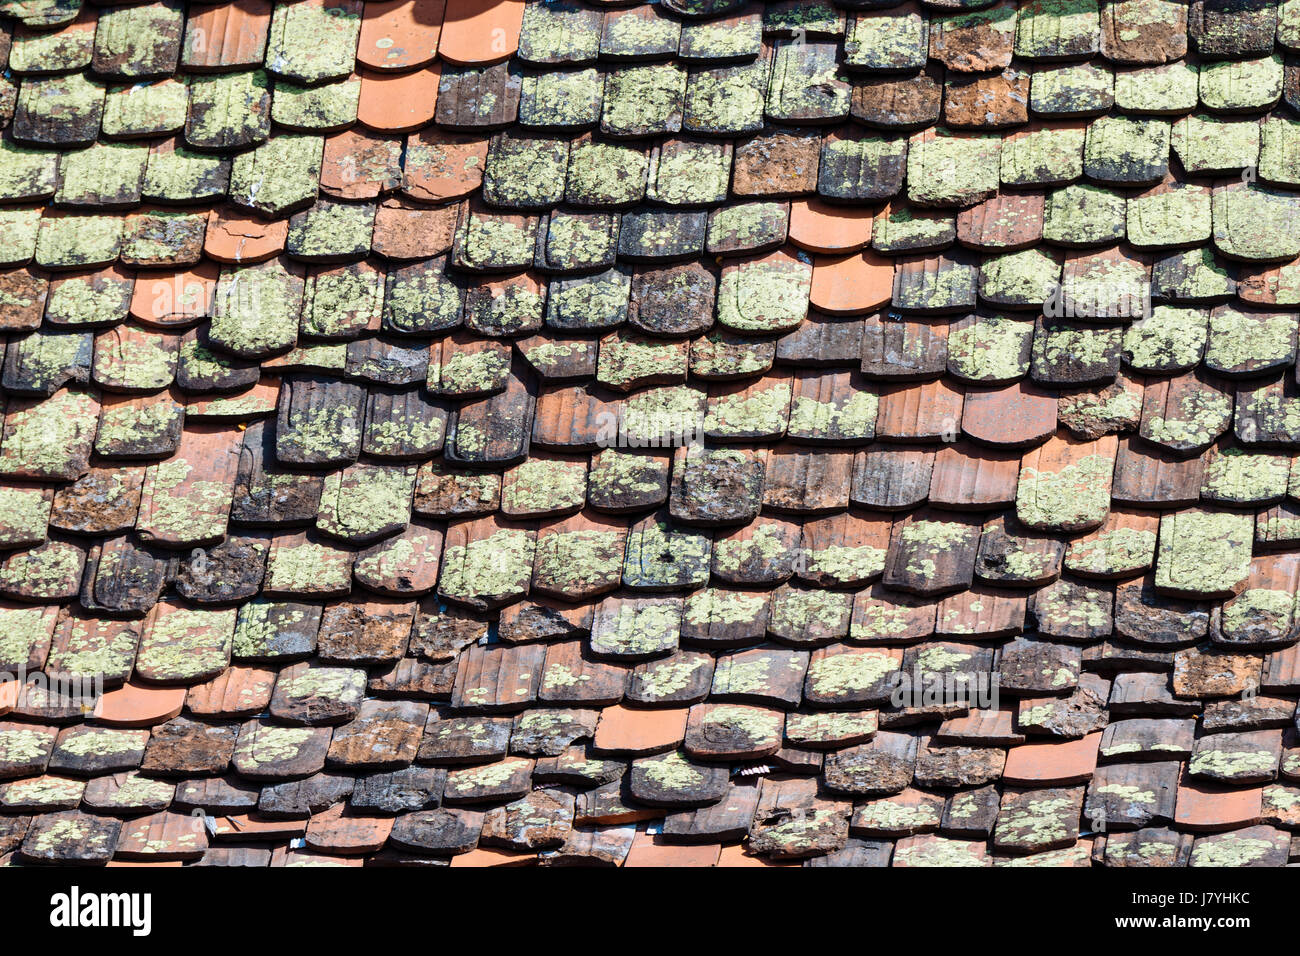 Mossy Roof Tiles Old Roof Detail Germany Stock Photo